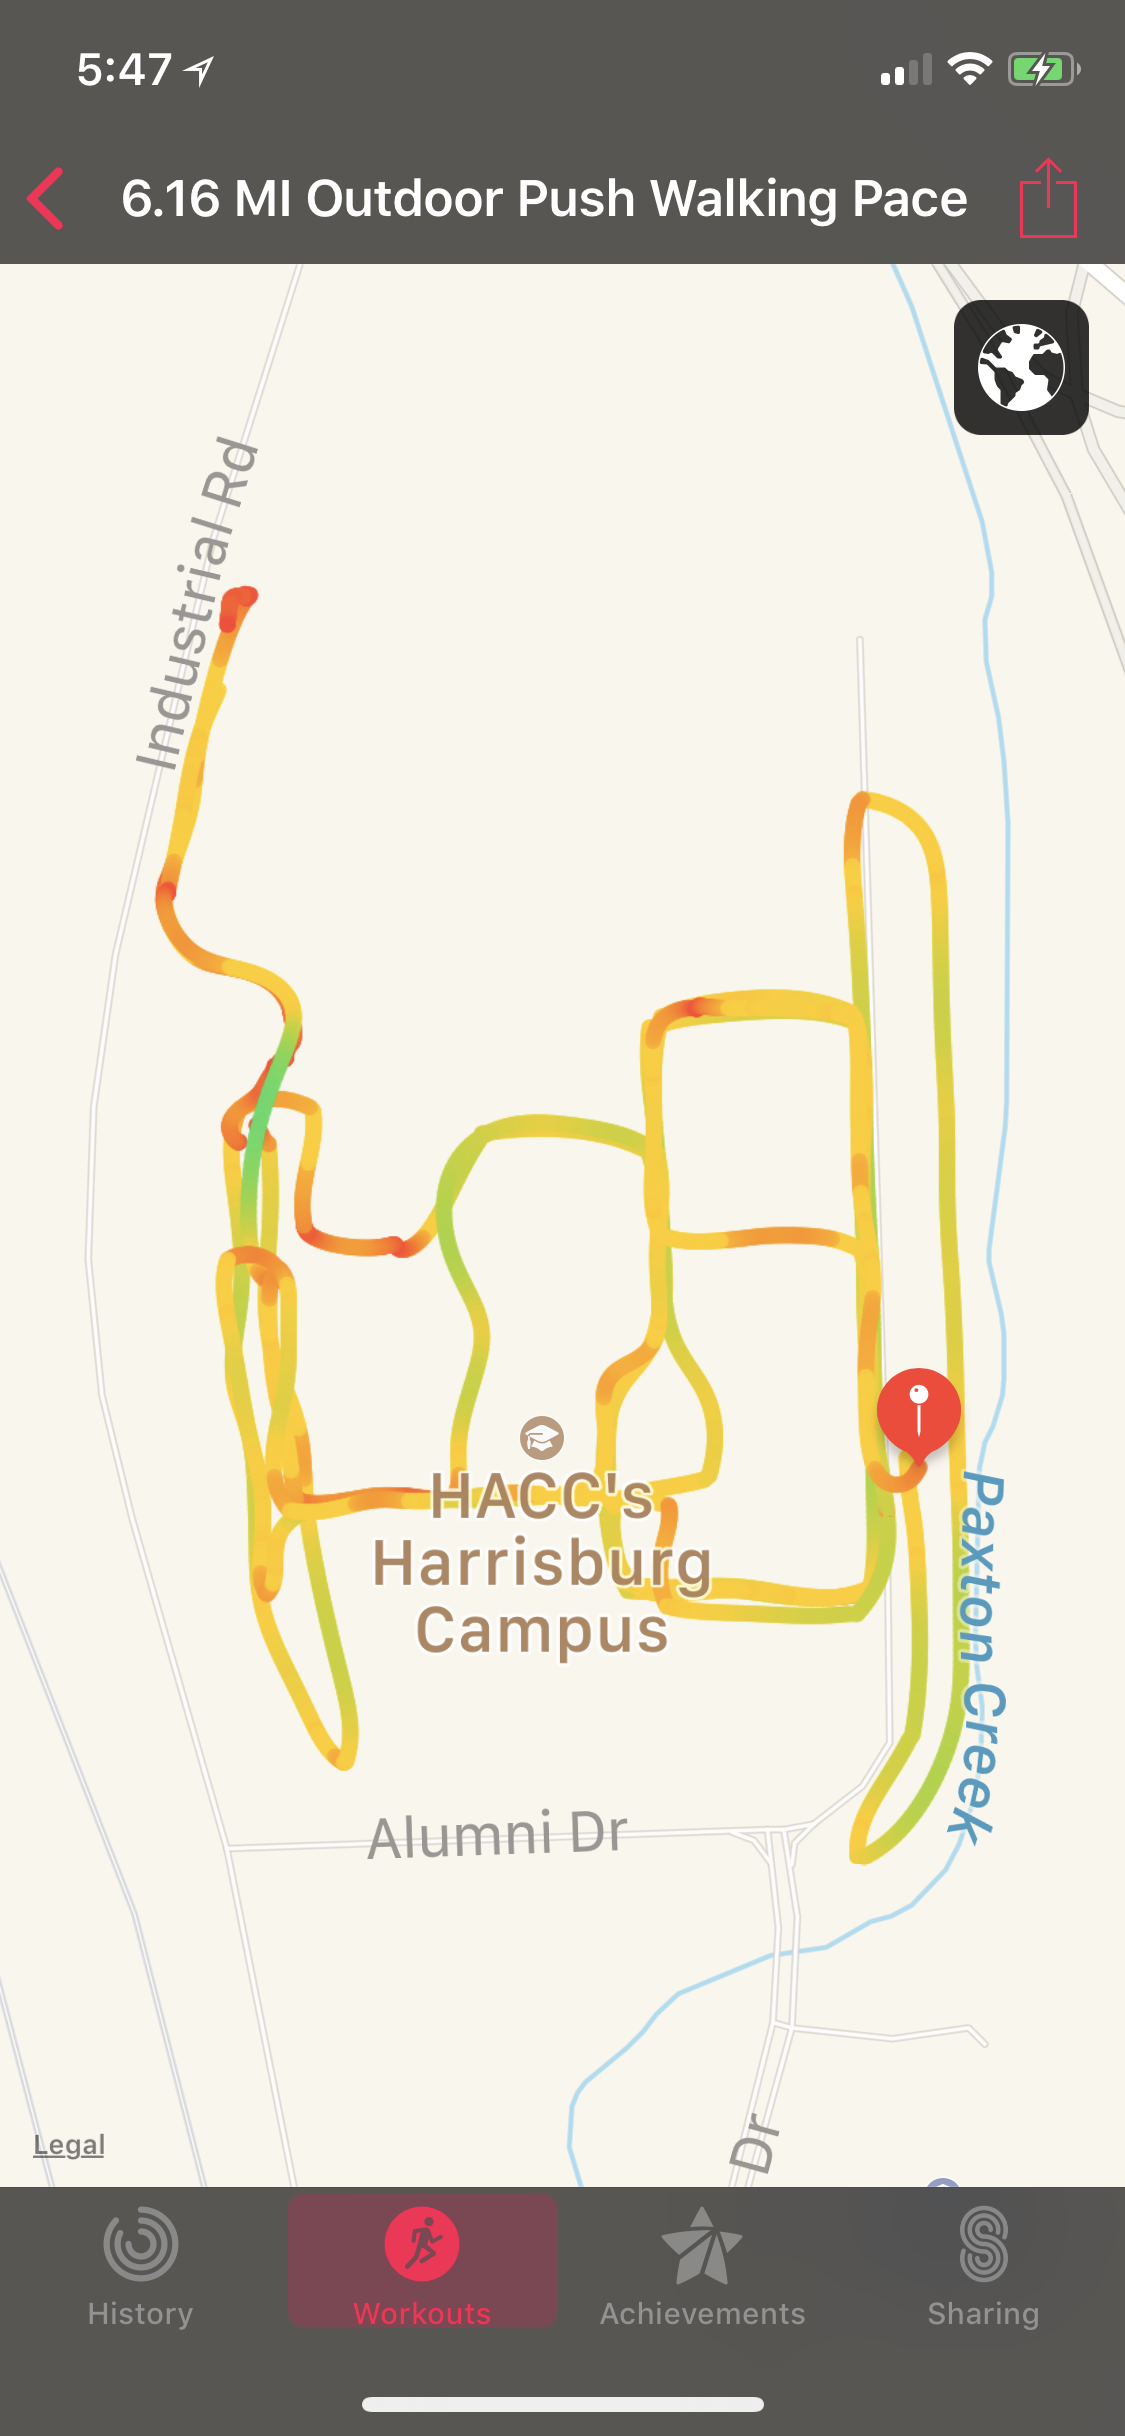 Hacc Campus Map. Penn State Campus Map, Millersville University ...